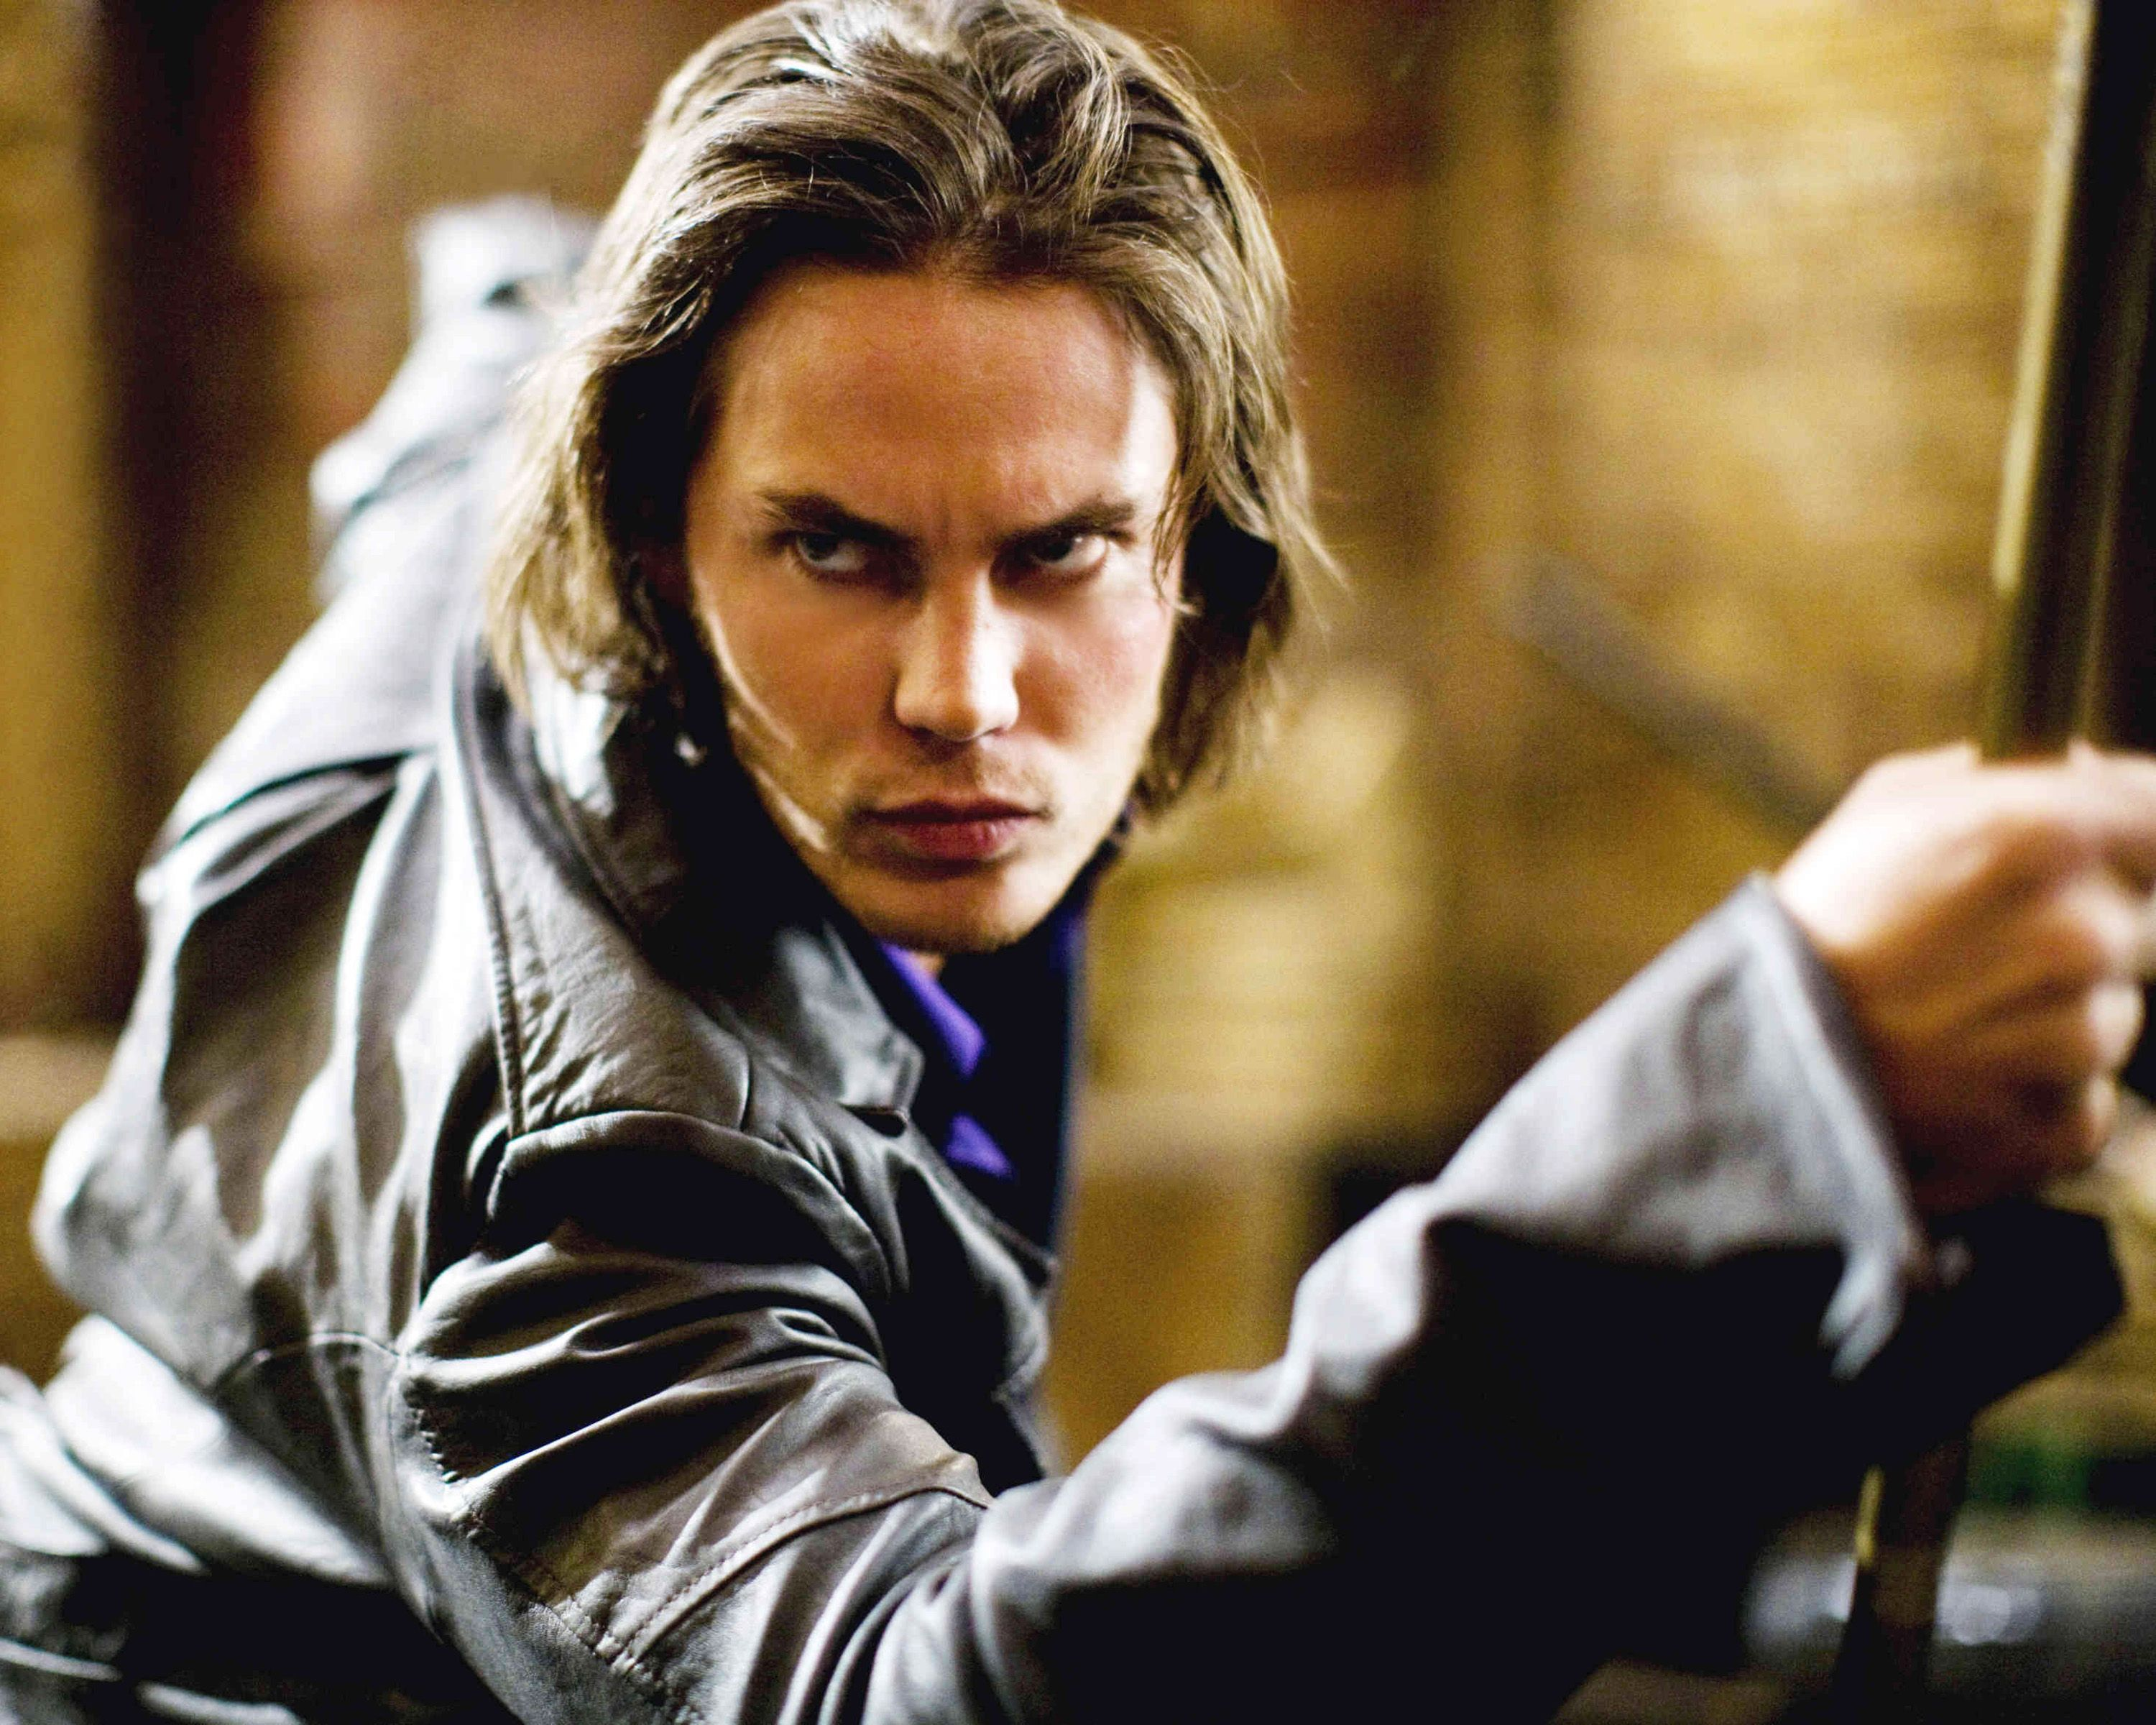 Gambit From X Men Origins Wolverine Taylor Kitsch Marvel Movie Releases Remy Lebeau